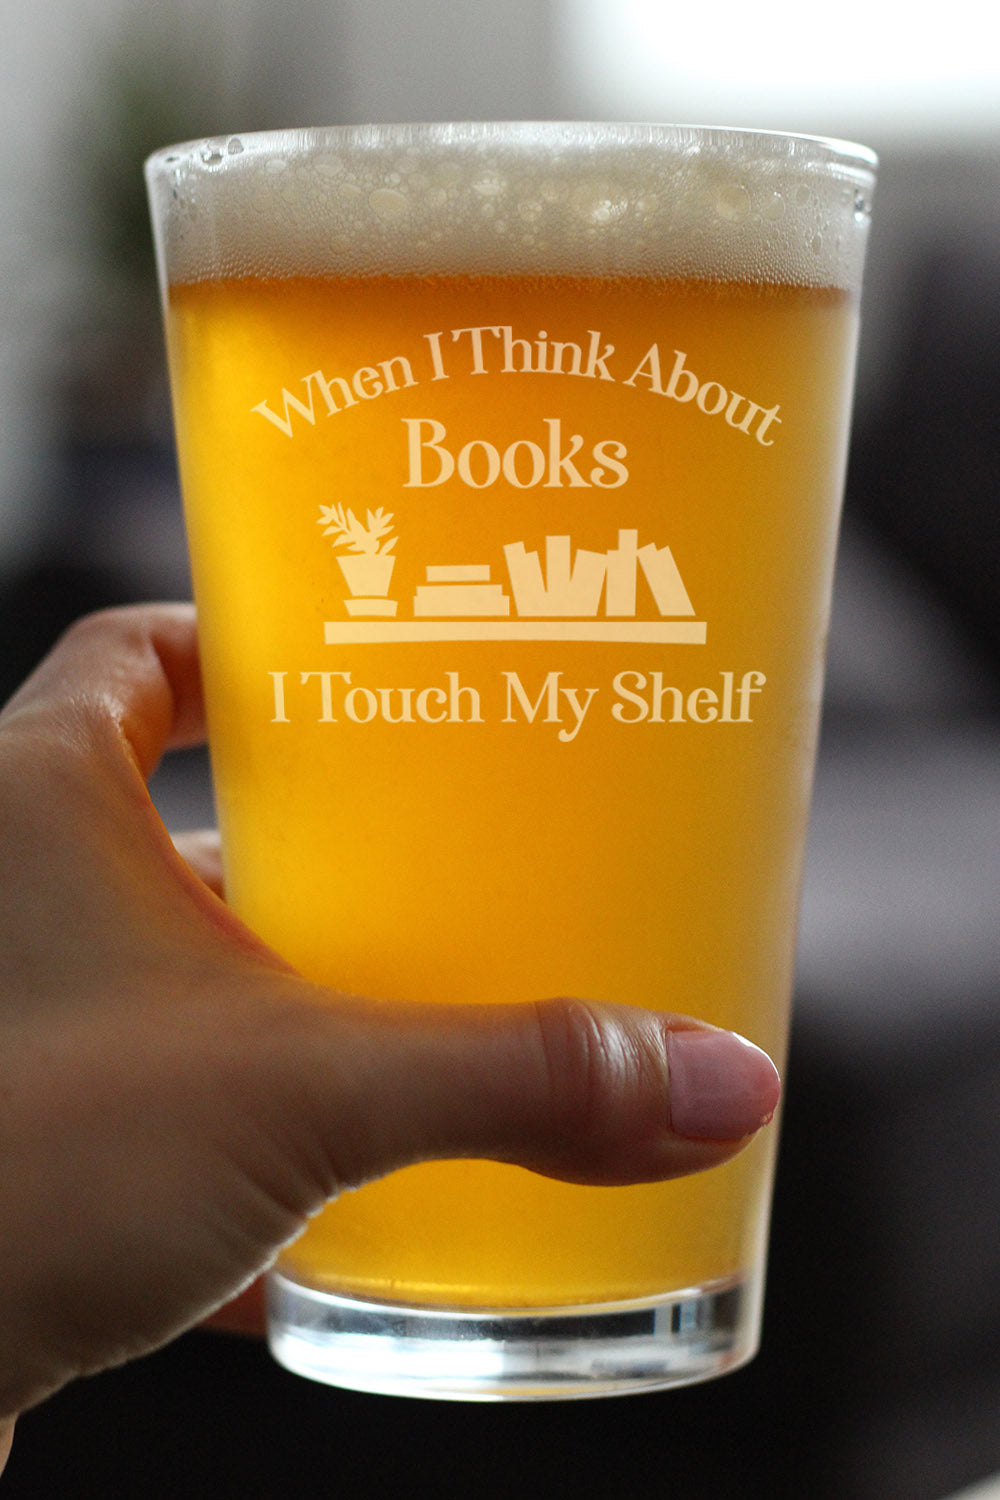 When I Think About Books I Touch My Shelf - 16 Ounce Pint Glass